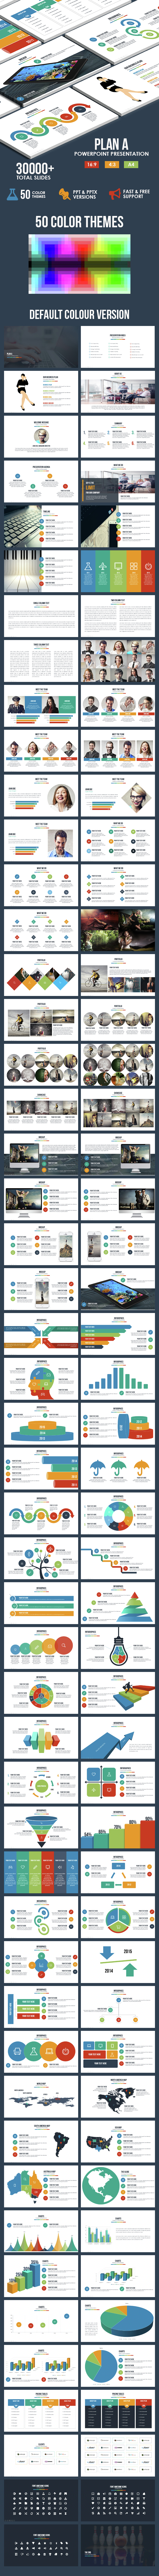 Plan A - Multi-purpose Powerpoint Template - Business PowerPoint Templates